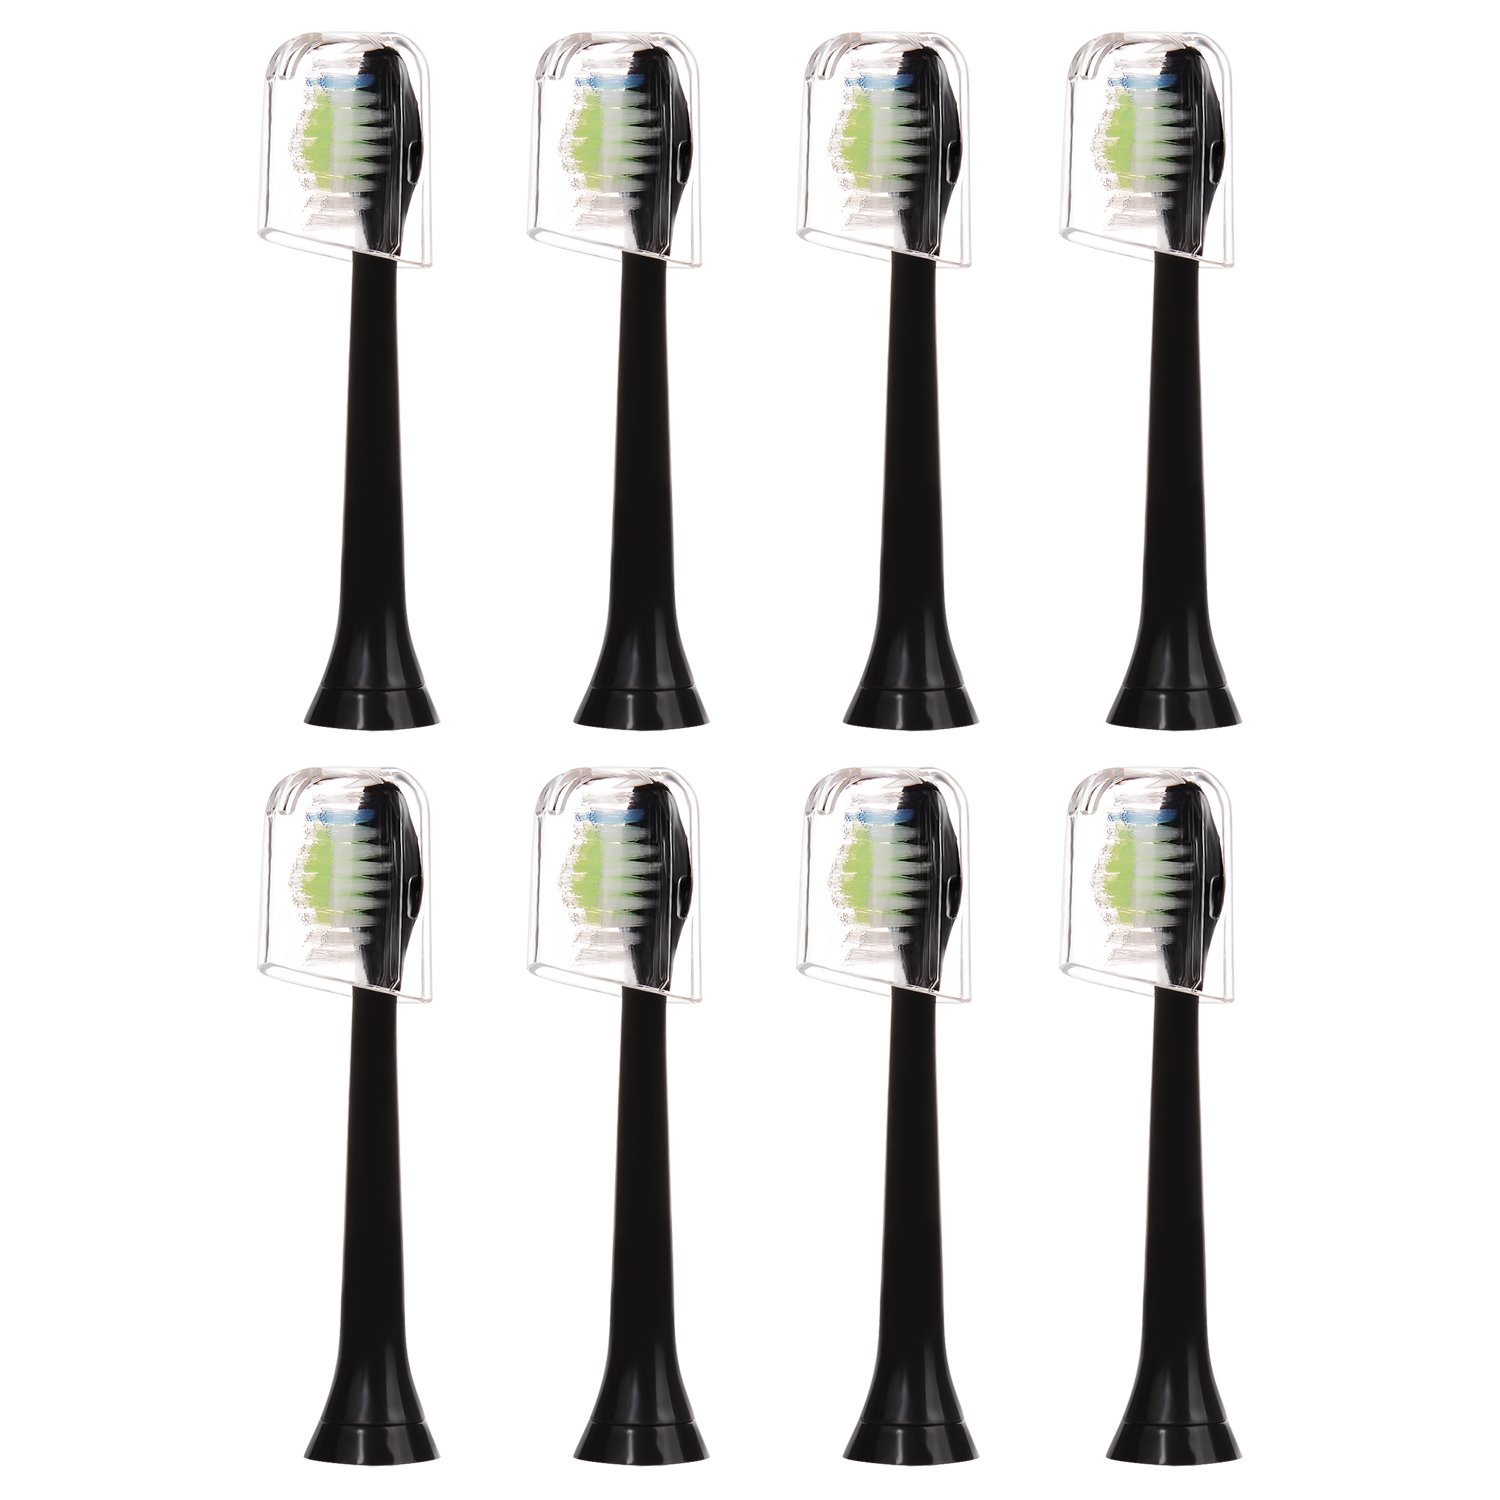 8 pcs (2x4) E-Cron® Toothbrush heads With Hygienic Travel Caps. Compatible Replacement Heads with Philips Sonicare DiamondClean Black.